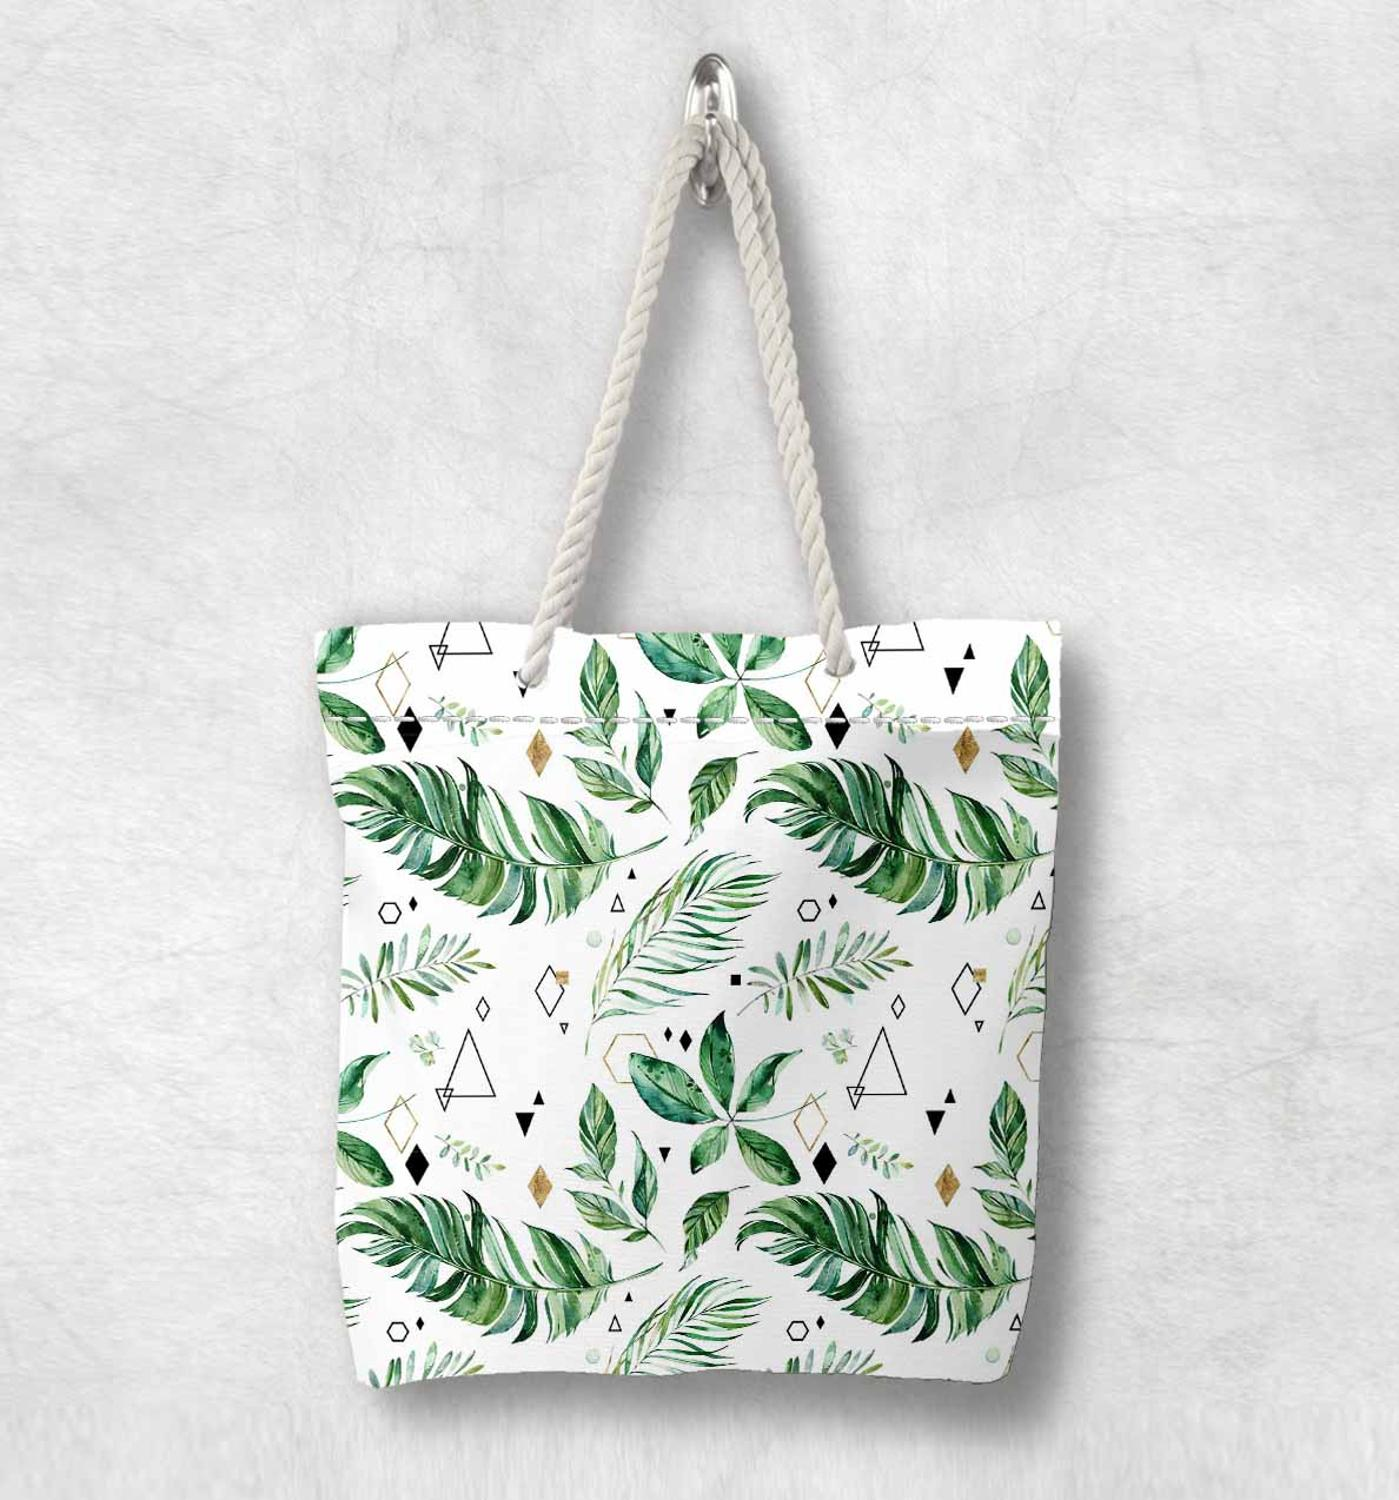 Else White Green Tropical Leaves Floral New Fashion White Rope Handle Canvas Bag Cotton Canvas Zippered Tote Bag Shoulder Bag